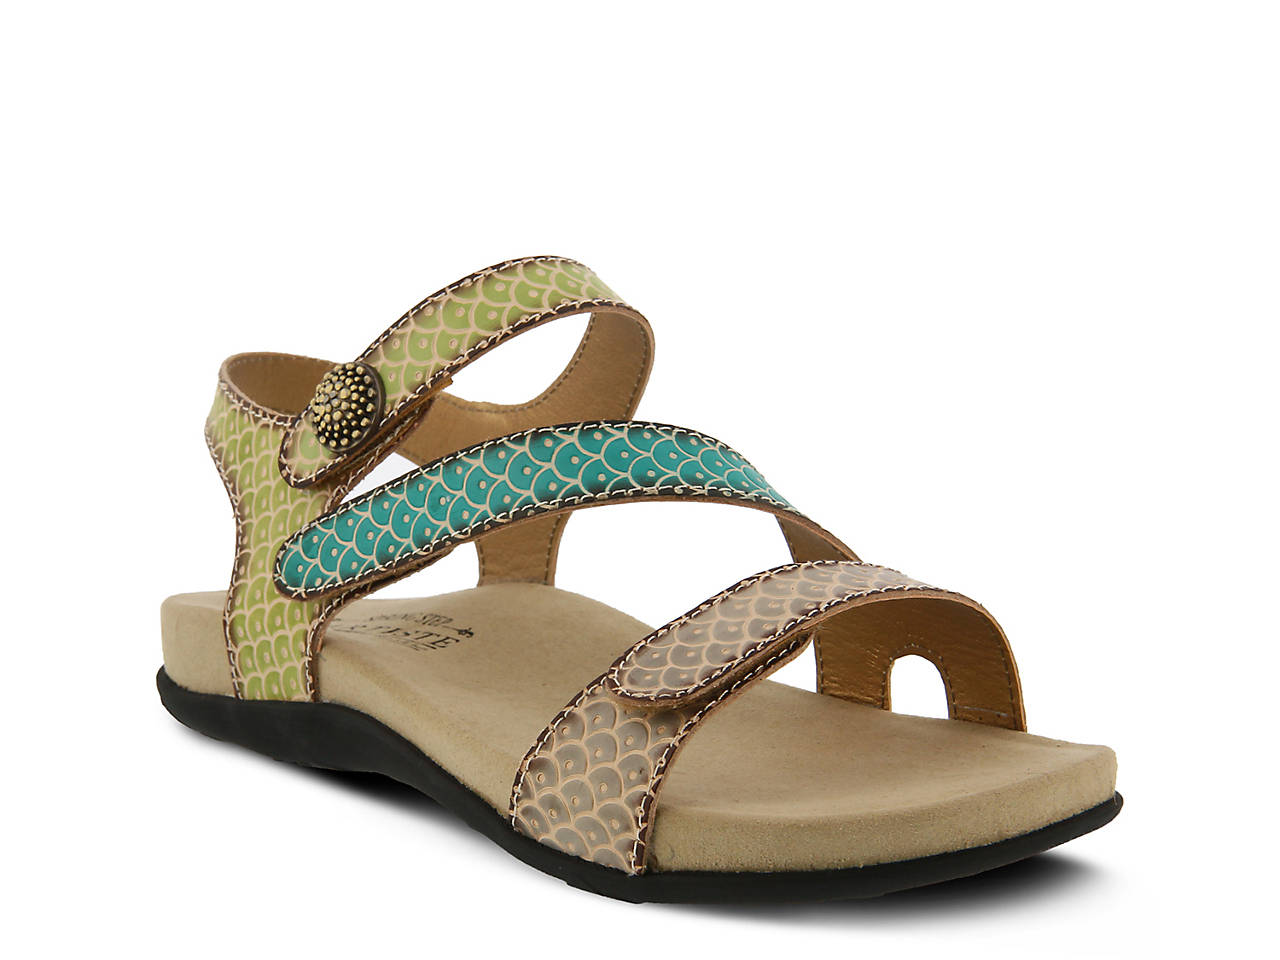 L'Artiste by Spring Step Leather Sport Sandals- Novato sale best prices clearance eastbay loMM4EMe7E